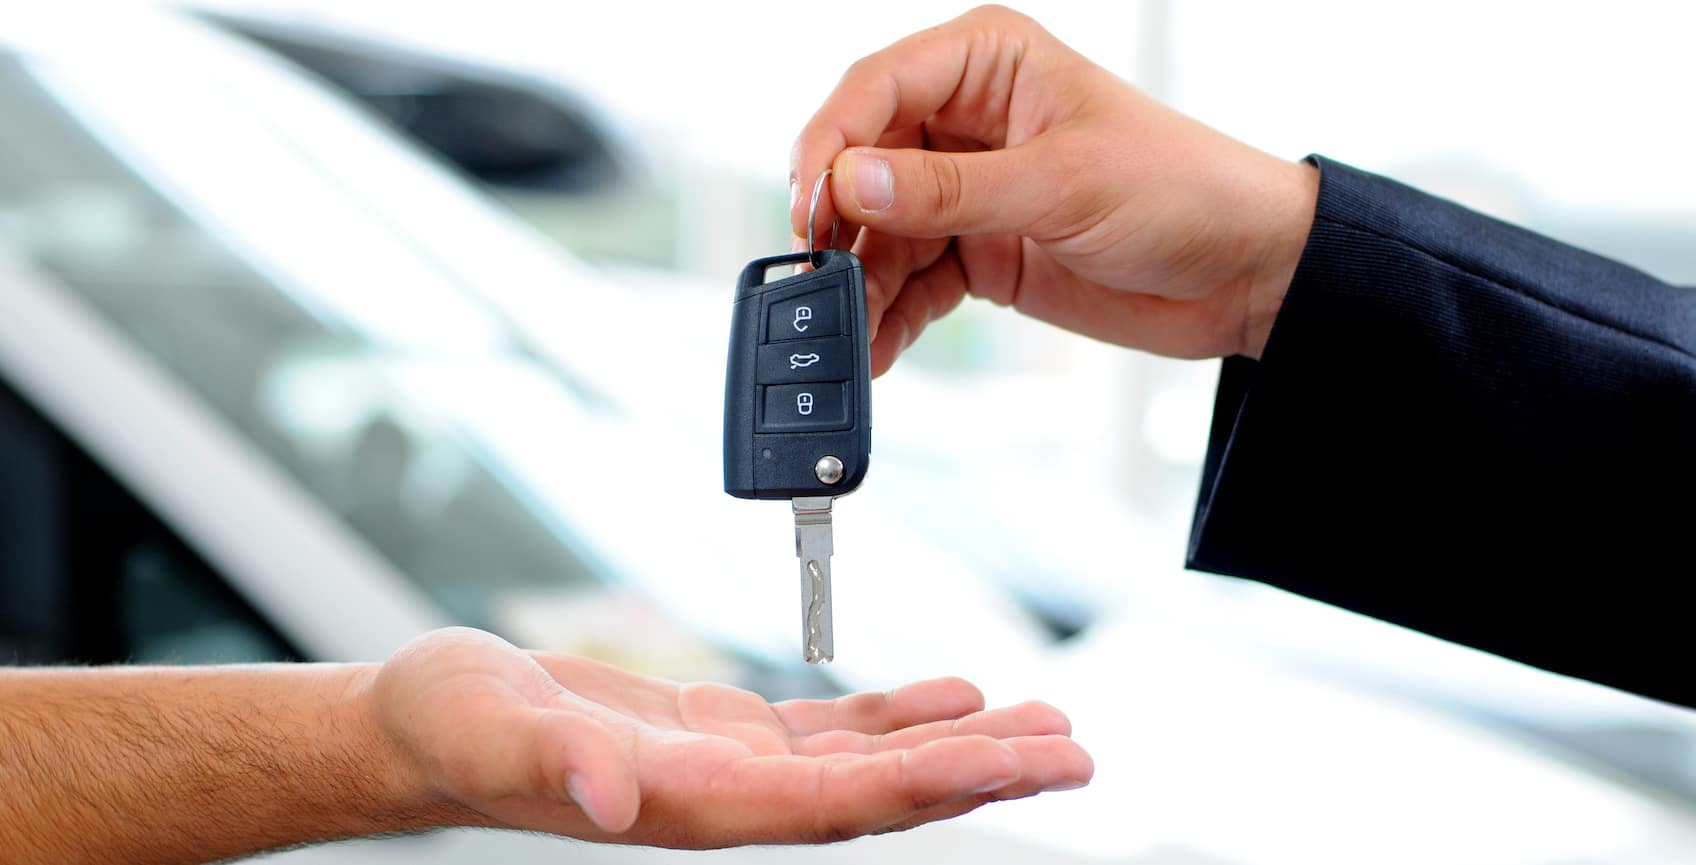 Handover of keys in dealership